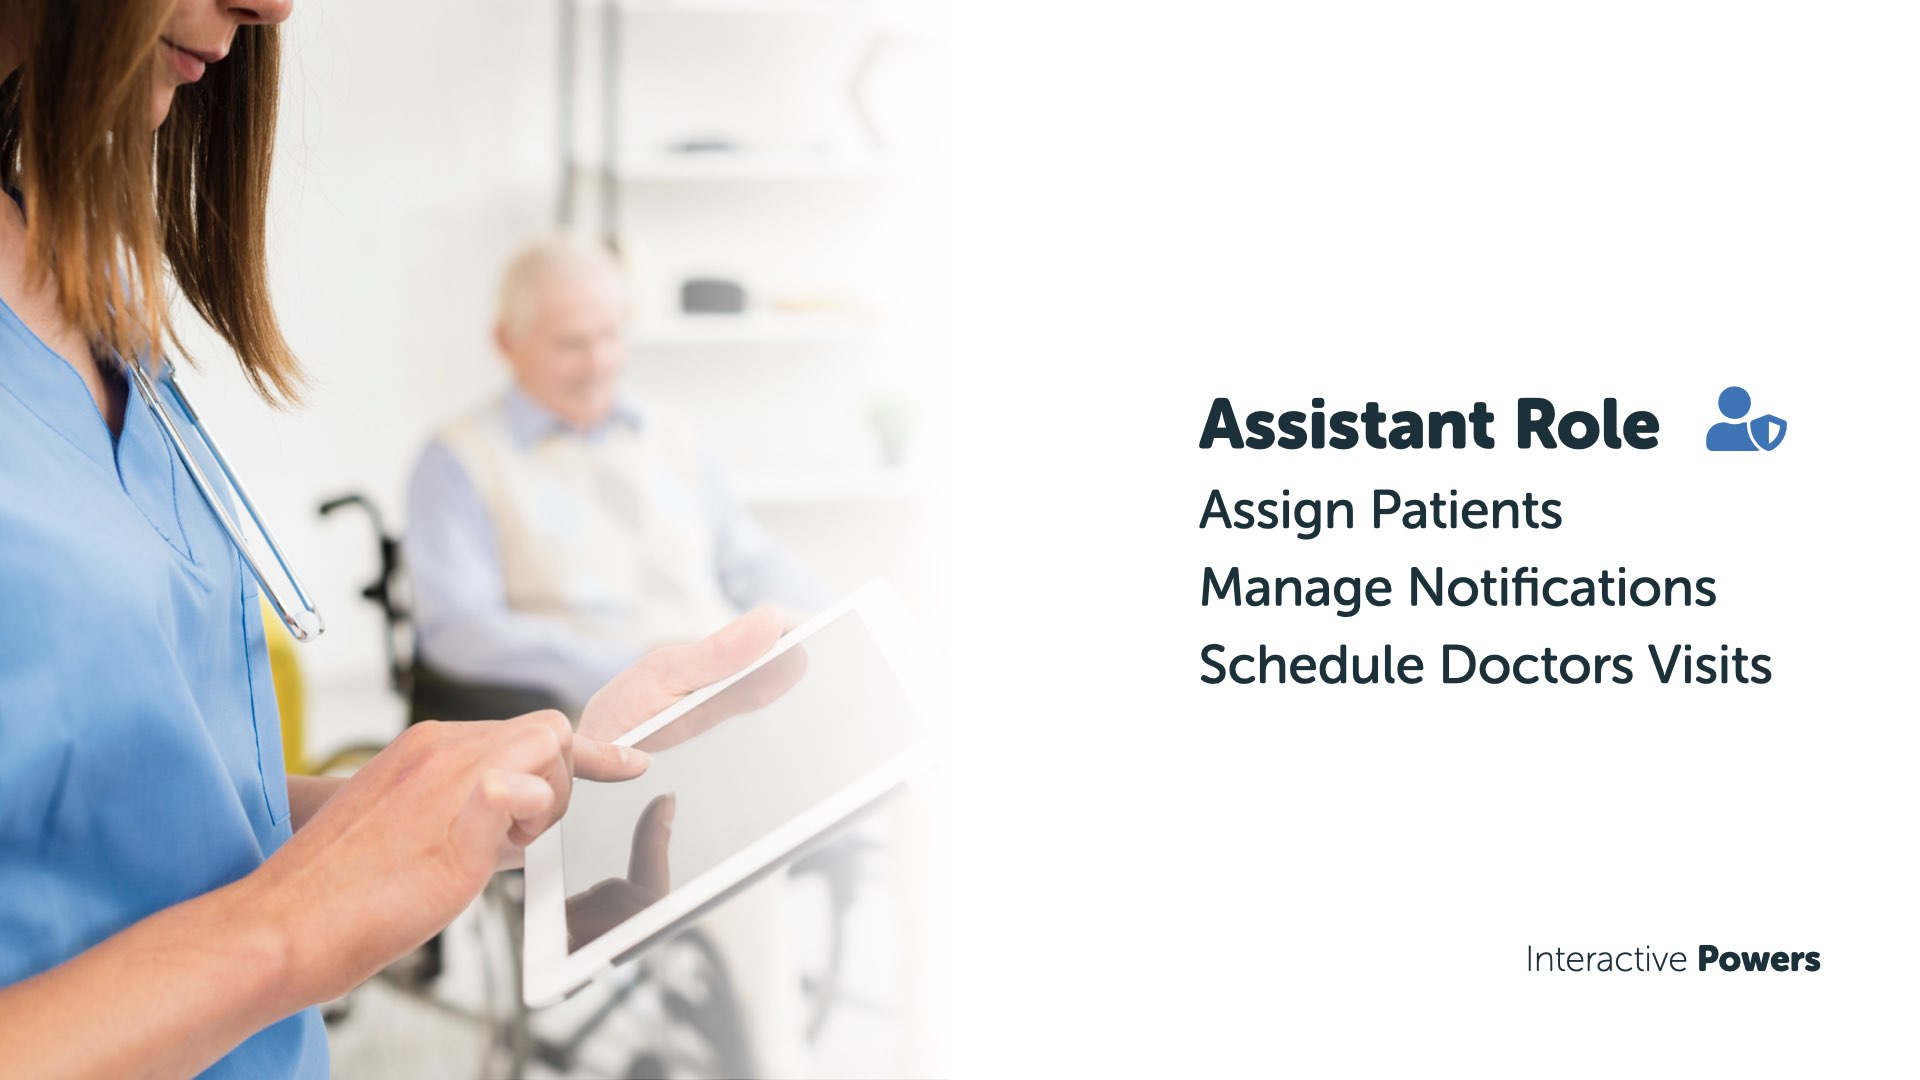 Virgo Healthcare - Assistant Role